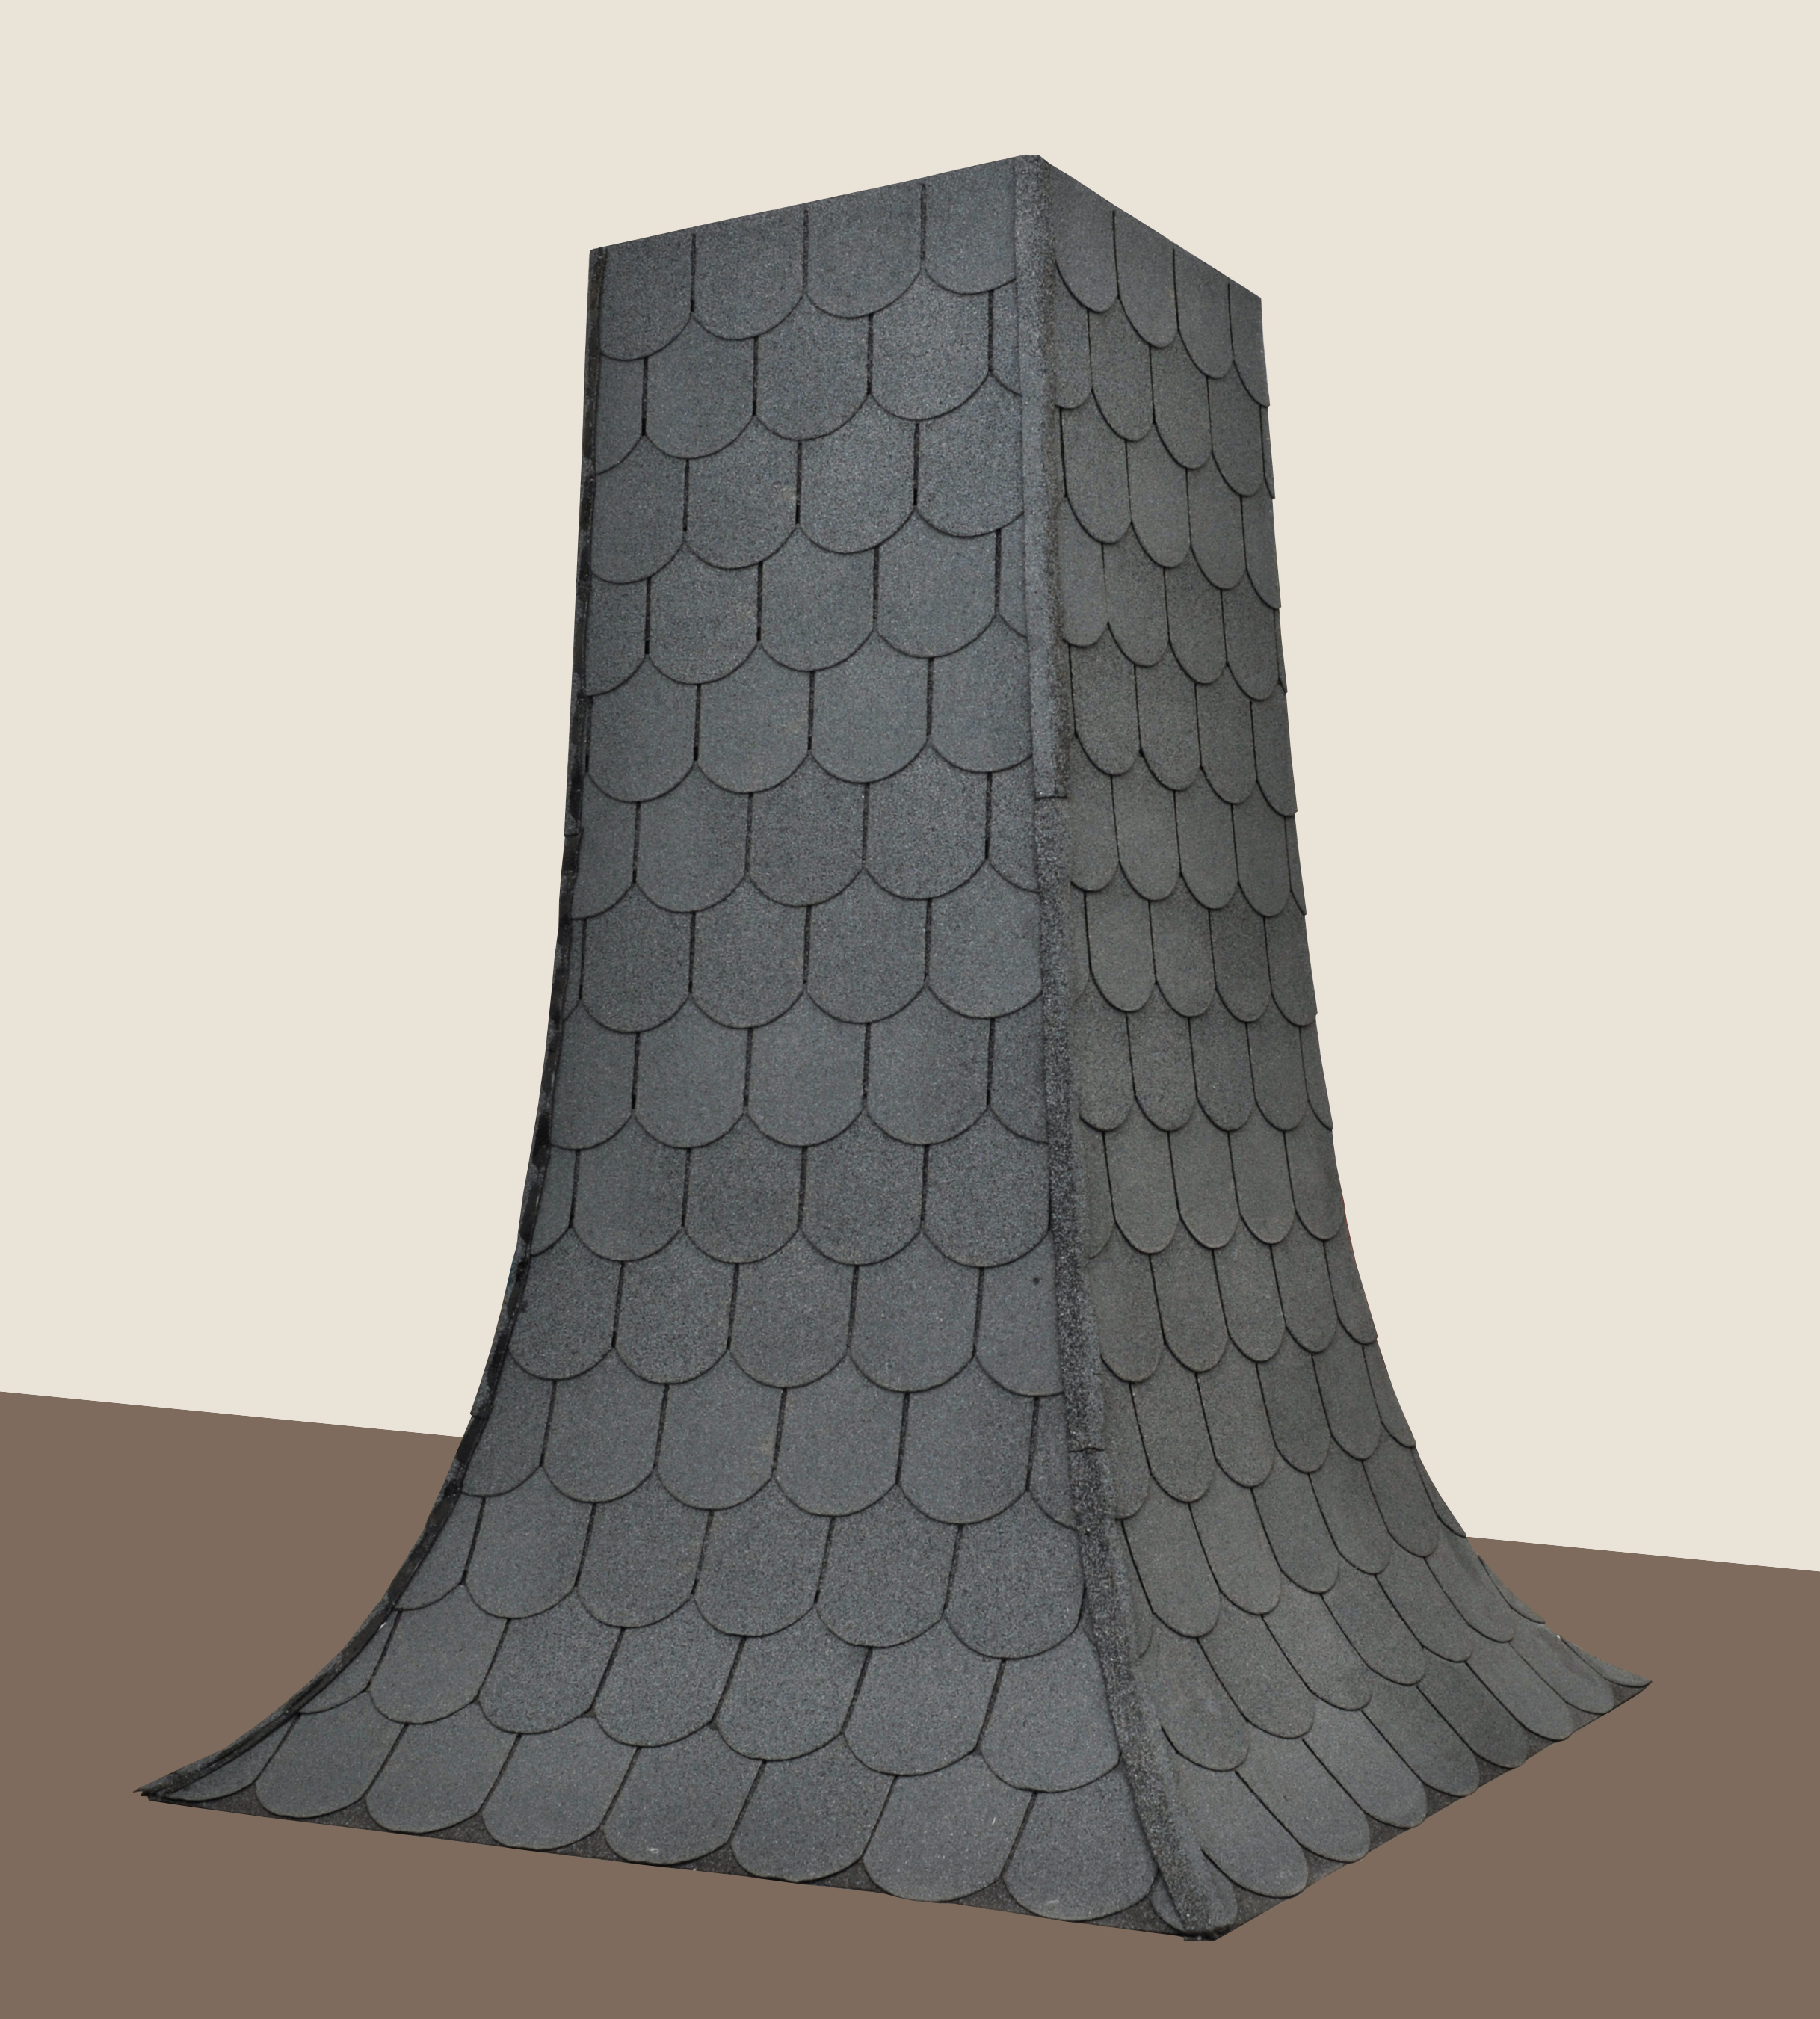 Suit of armour was created as a box, which is closed at three edges and completely covered with shingles of bitumen. On her fourth edge the recipient can access the artworkSuit of armour was created as a box, which is closed at three edges and completely covered with shingles of bitumen. On her fourth edge the recipient can access the artwork